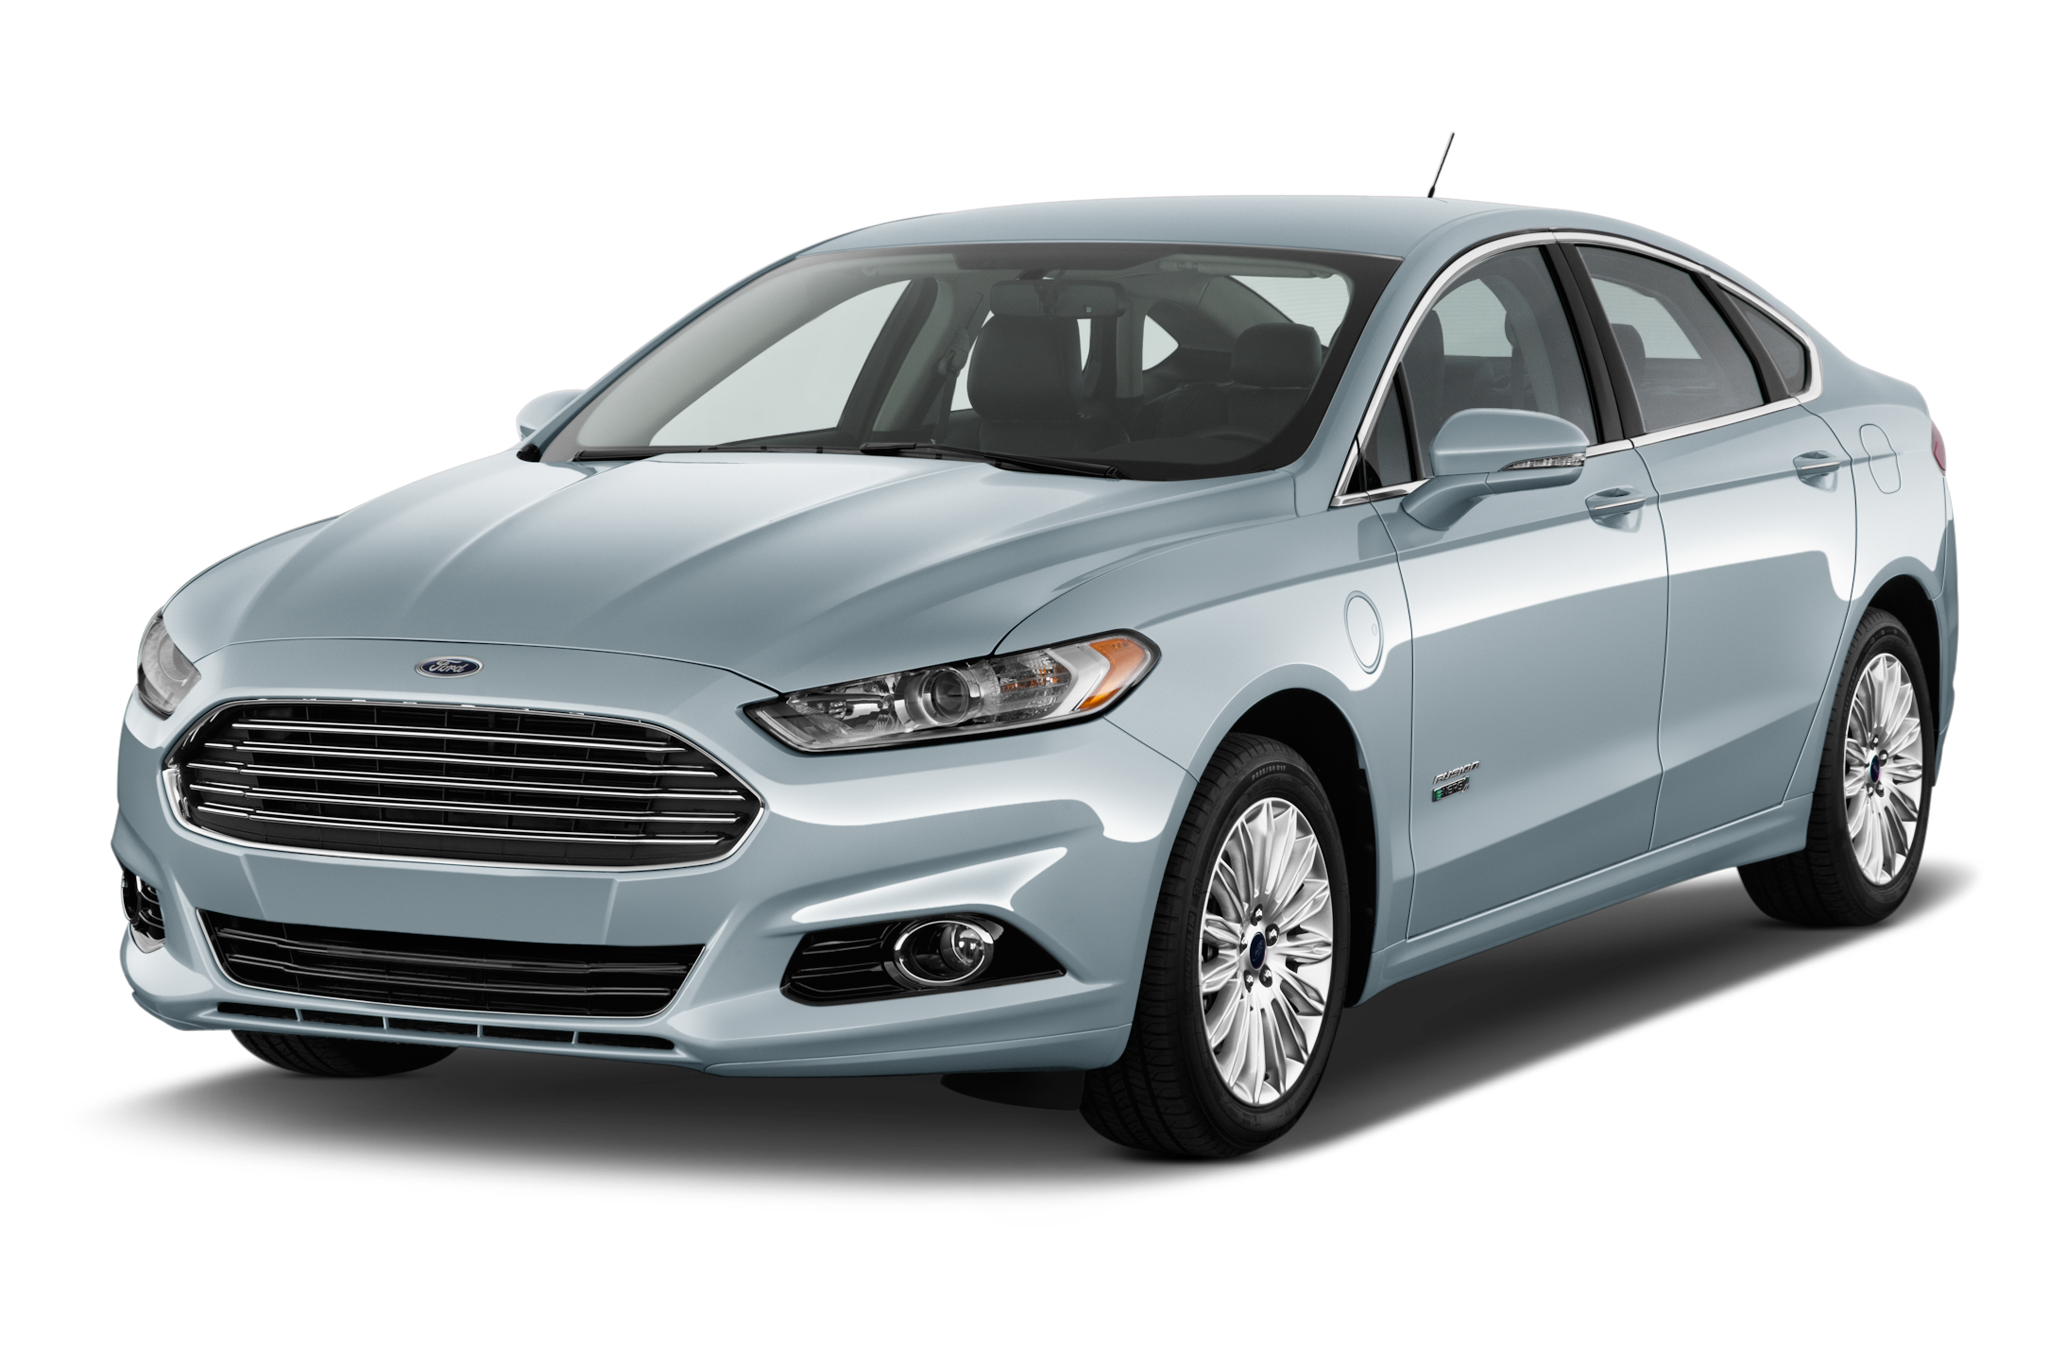 2014 Ford Fusion Energi Reviews and Rating